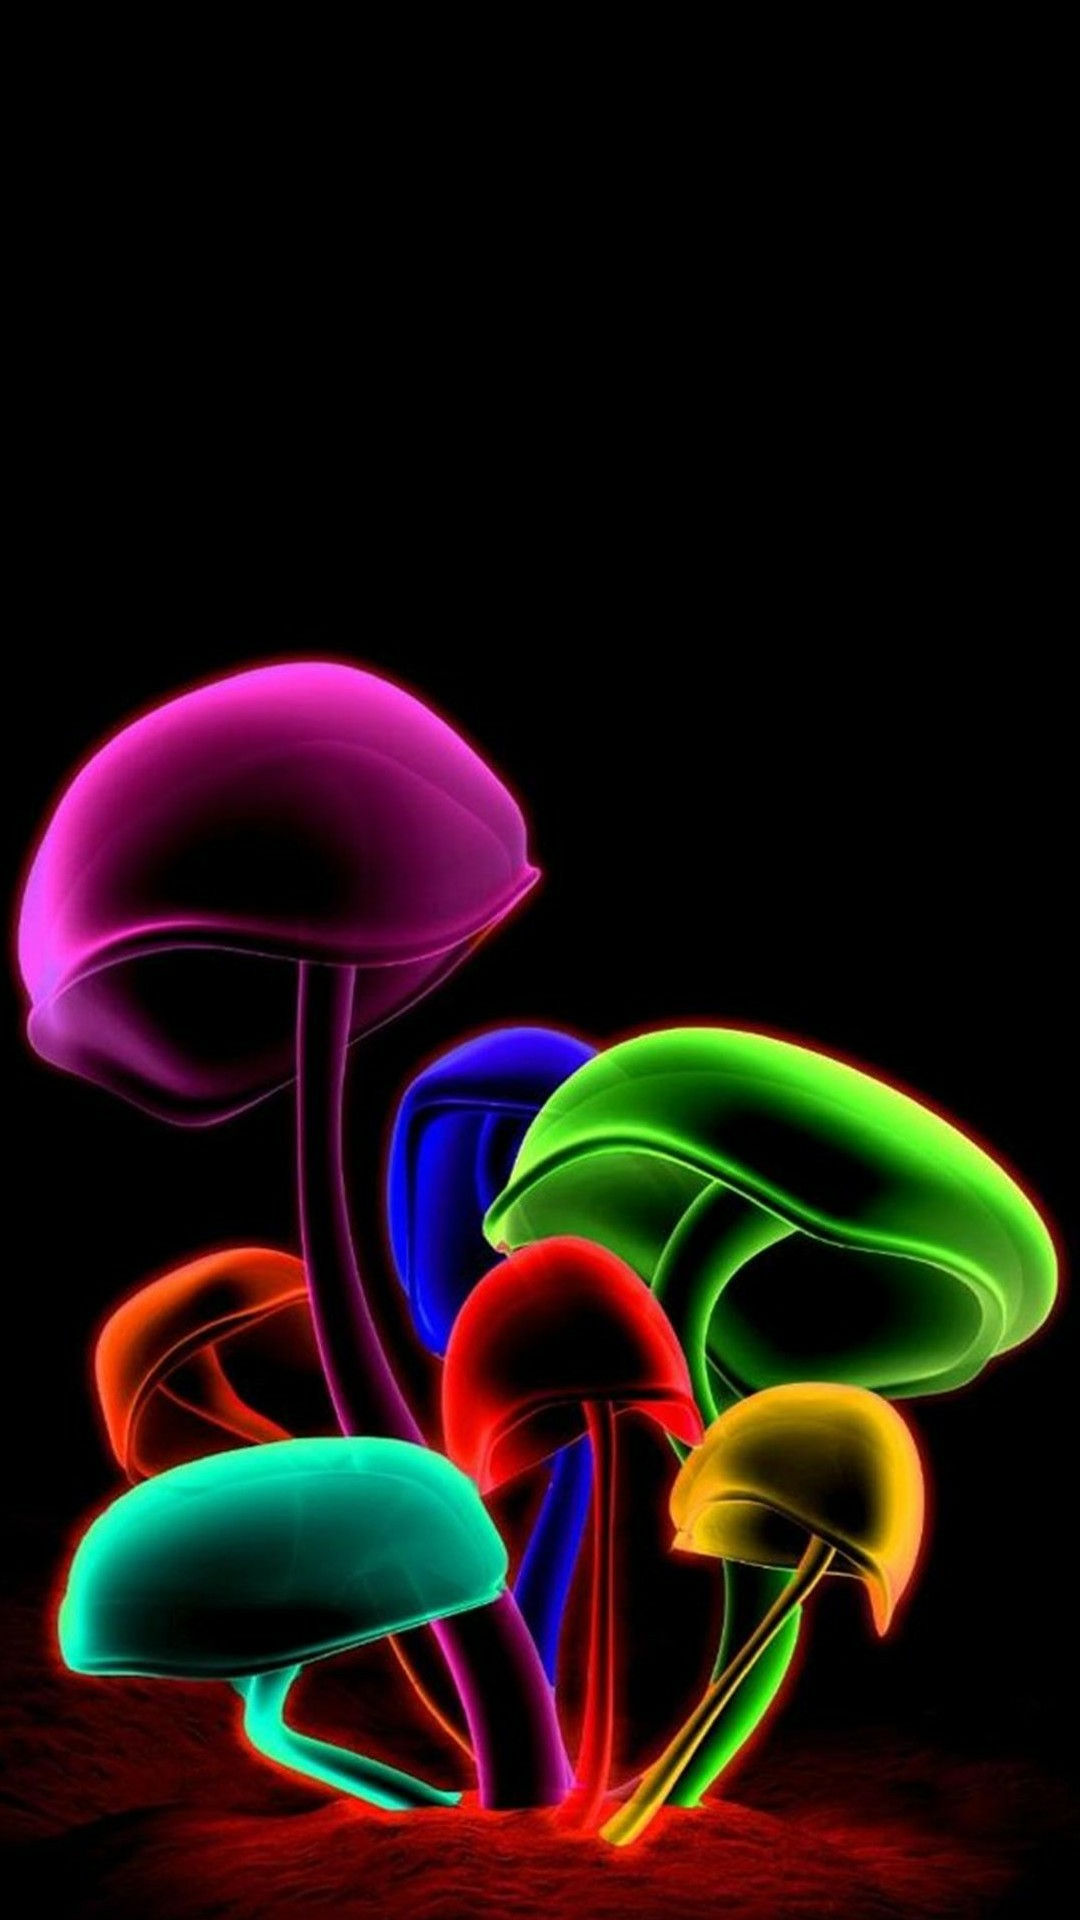 Mobile Wallpapers 3D Free Download